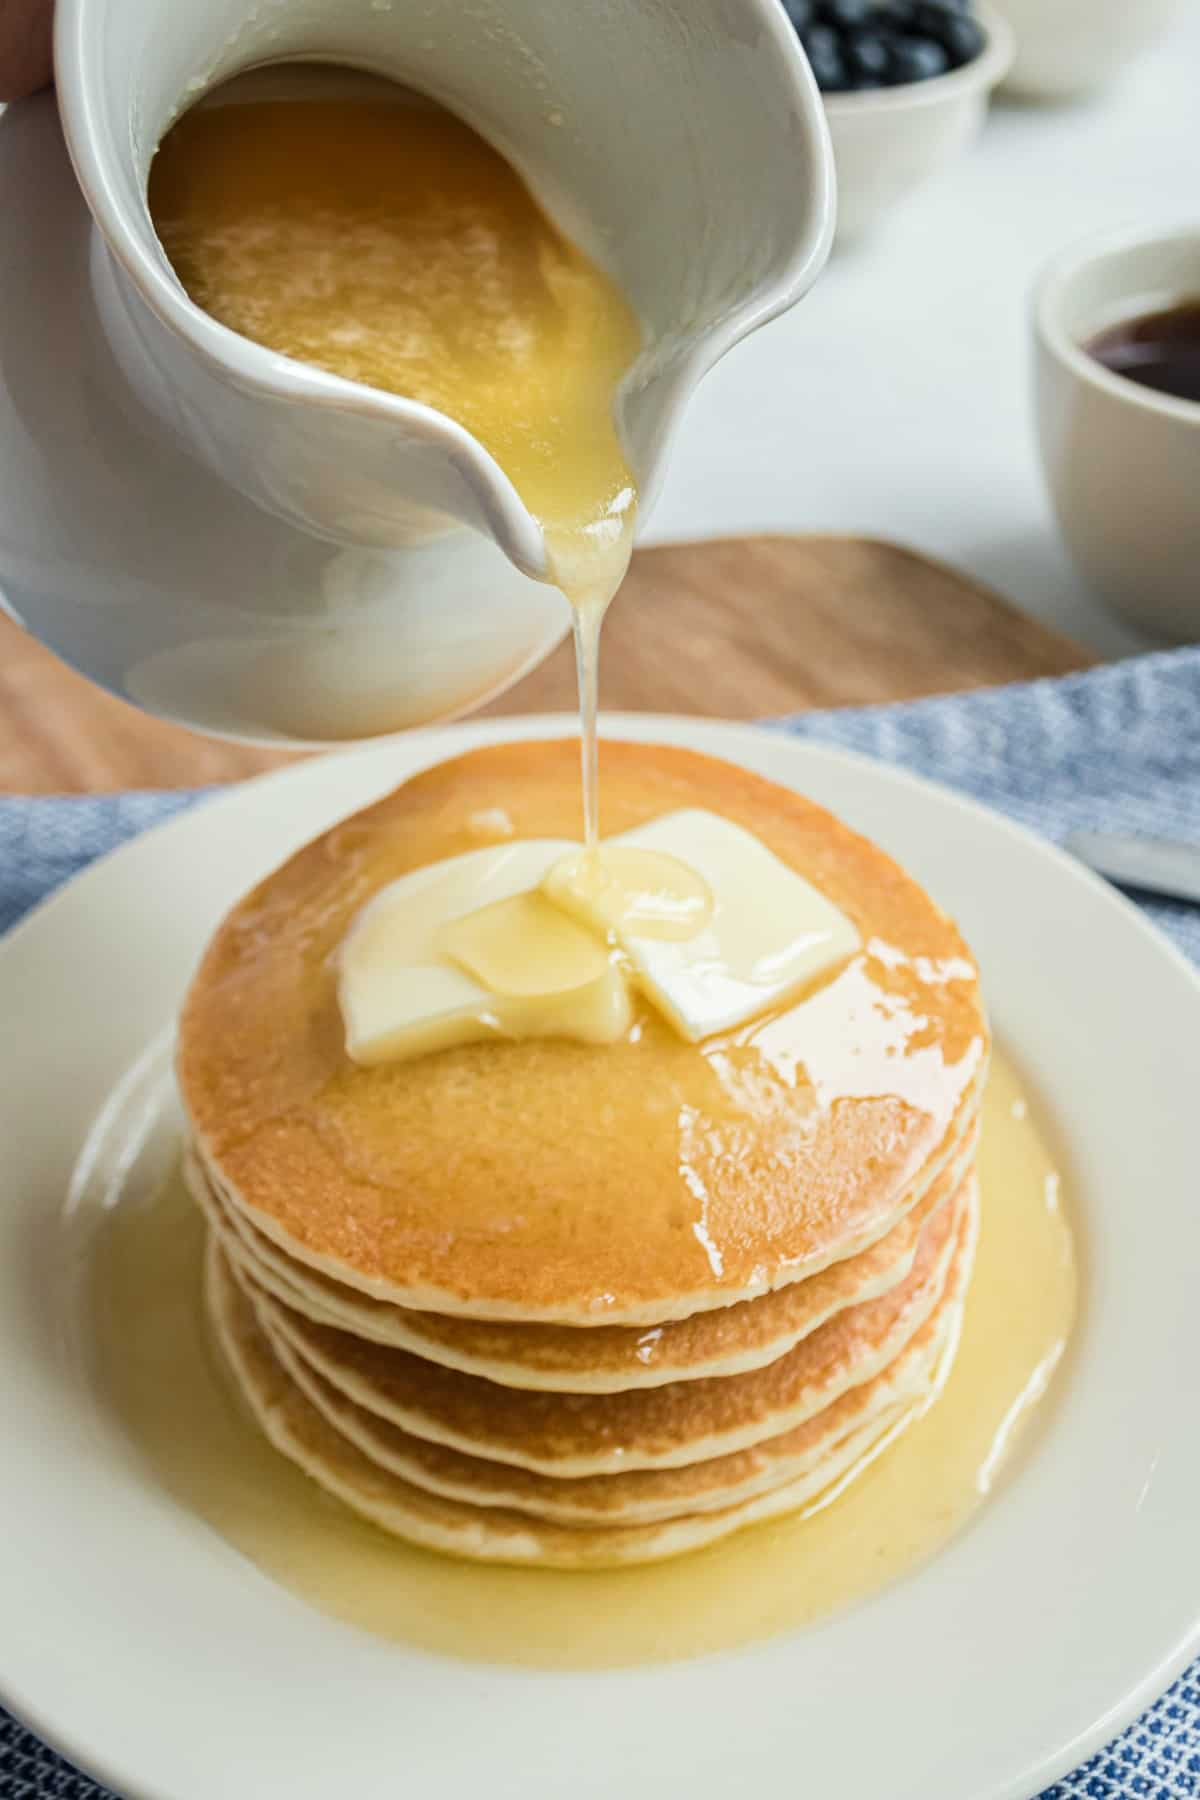 Buttermilk syrup in a white pitcher being poured over a stack of pancakes.